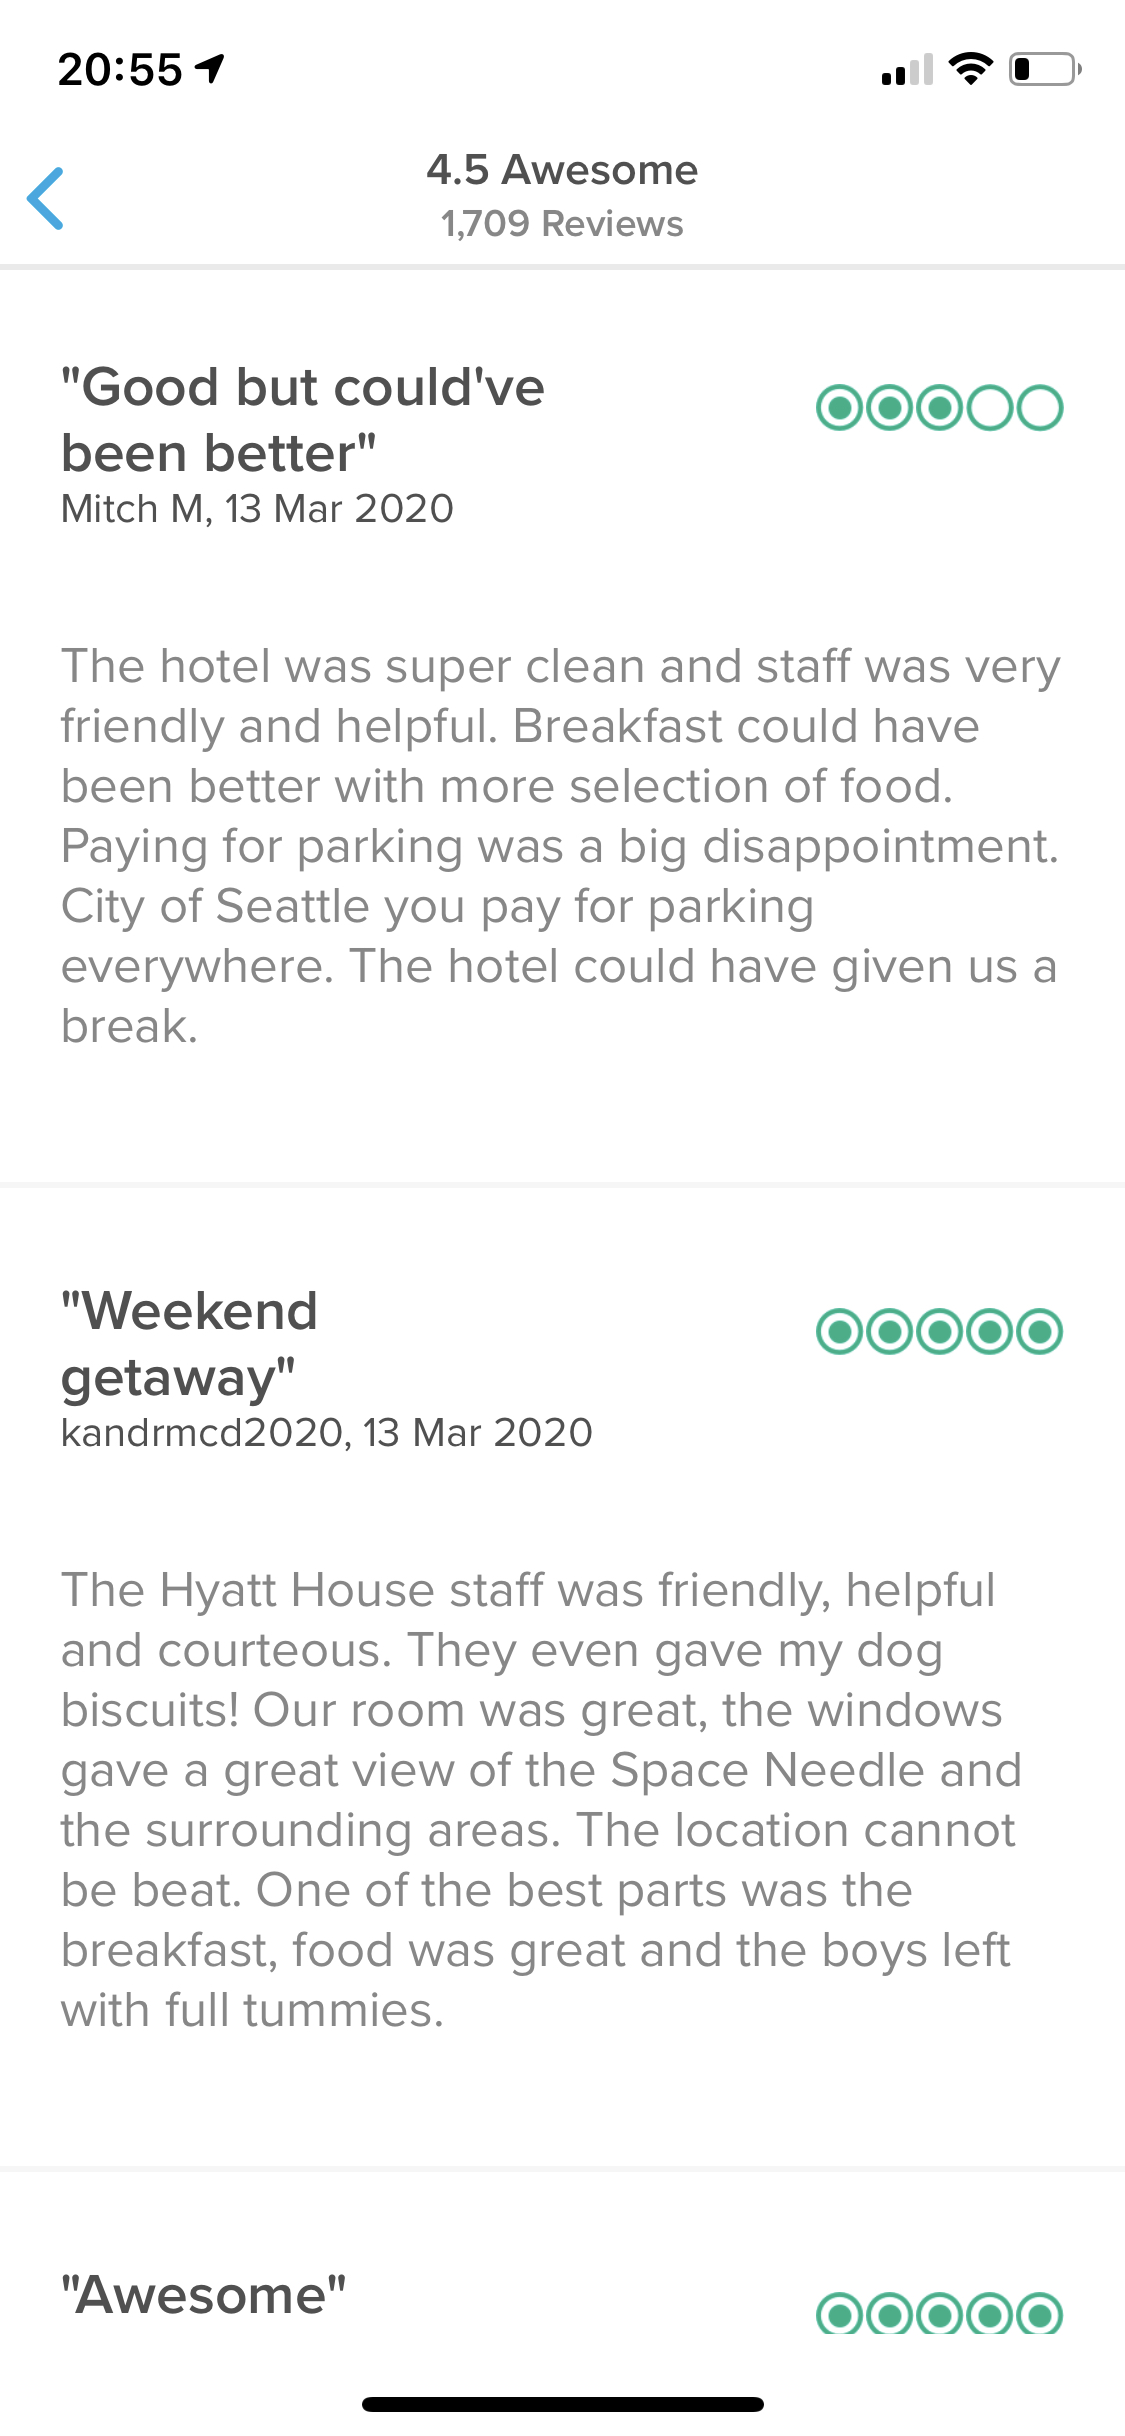 Recent hotel reviews screenshot